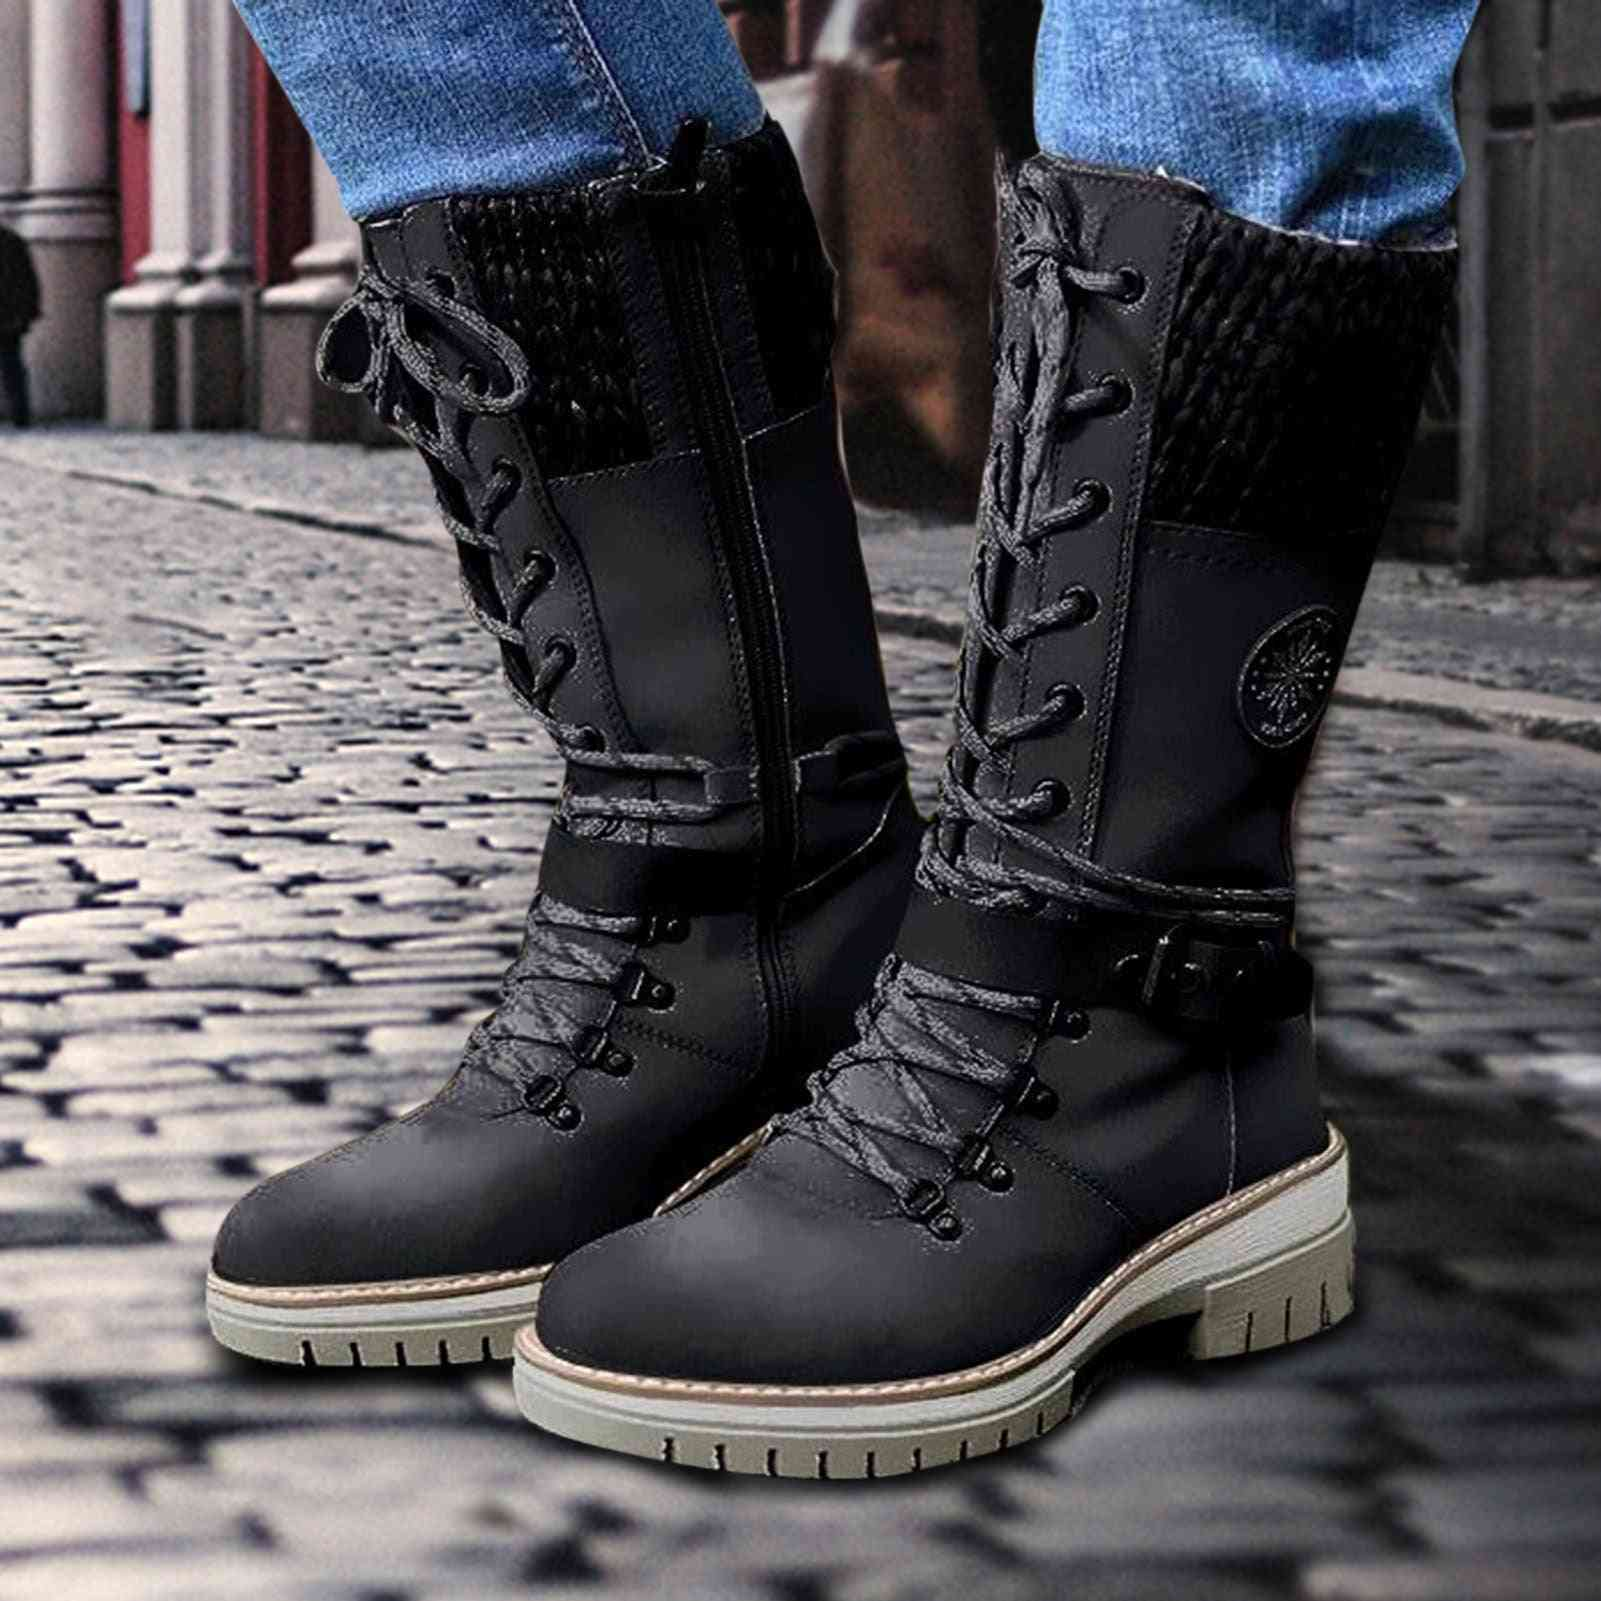 Women's Winter Mid Height Leather Boots Waterproof Warm Snow Boots